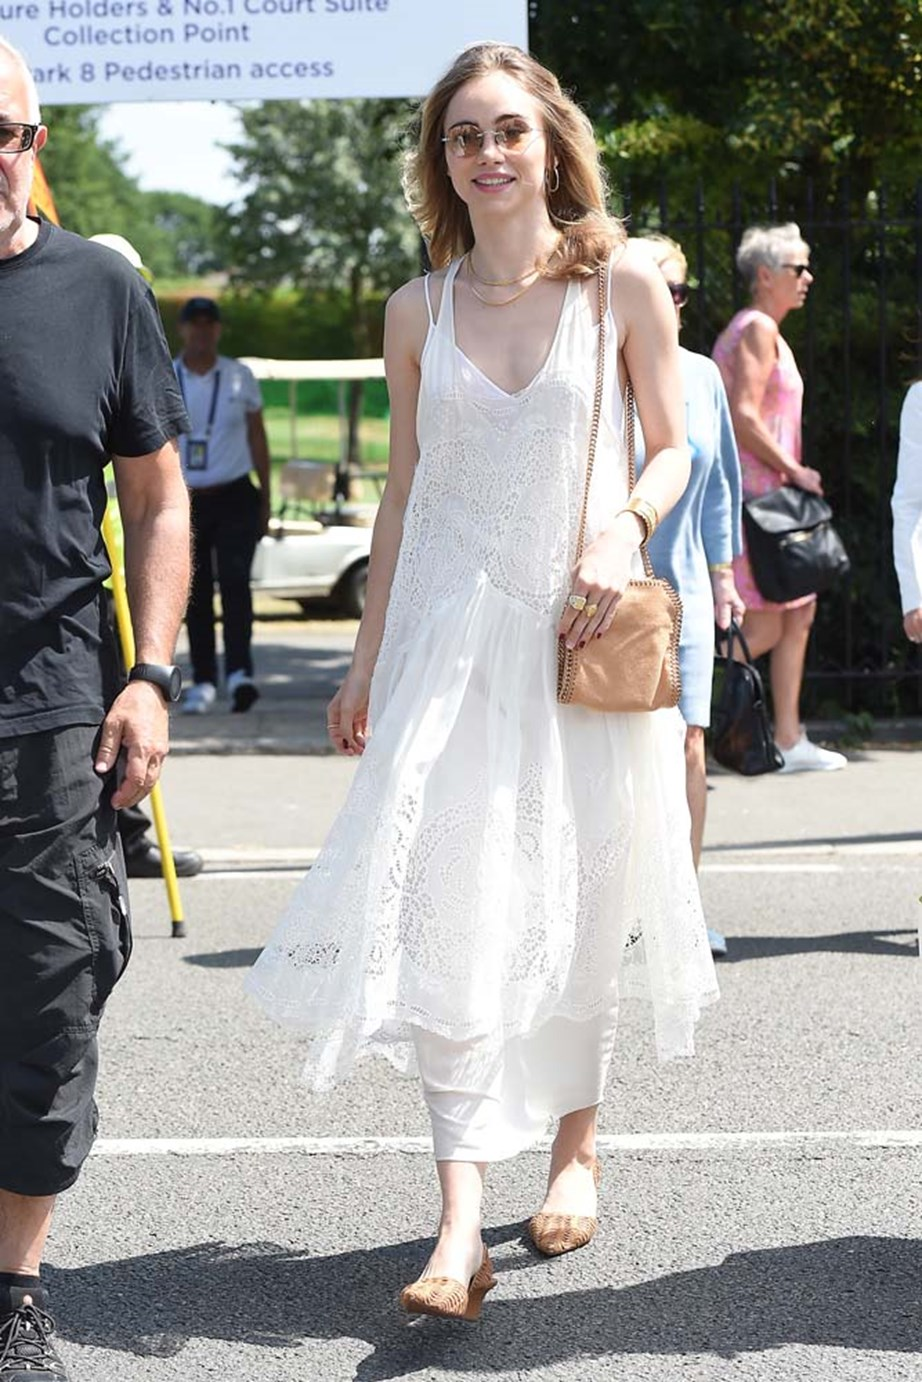 """***Suki Waterhouse***<bR><br> """"Has she layered two dresses here? Either way, with the boho jewellery and woven shoes, the effect is as if she's flung open French doors on the stale, stuffy air of Wimbledon dressing to let in a refreshing summer breeze. Thank you, Suki, for reminding us it's a game, not a wedding."""" - Tom Lazarus, copy director."""